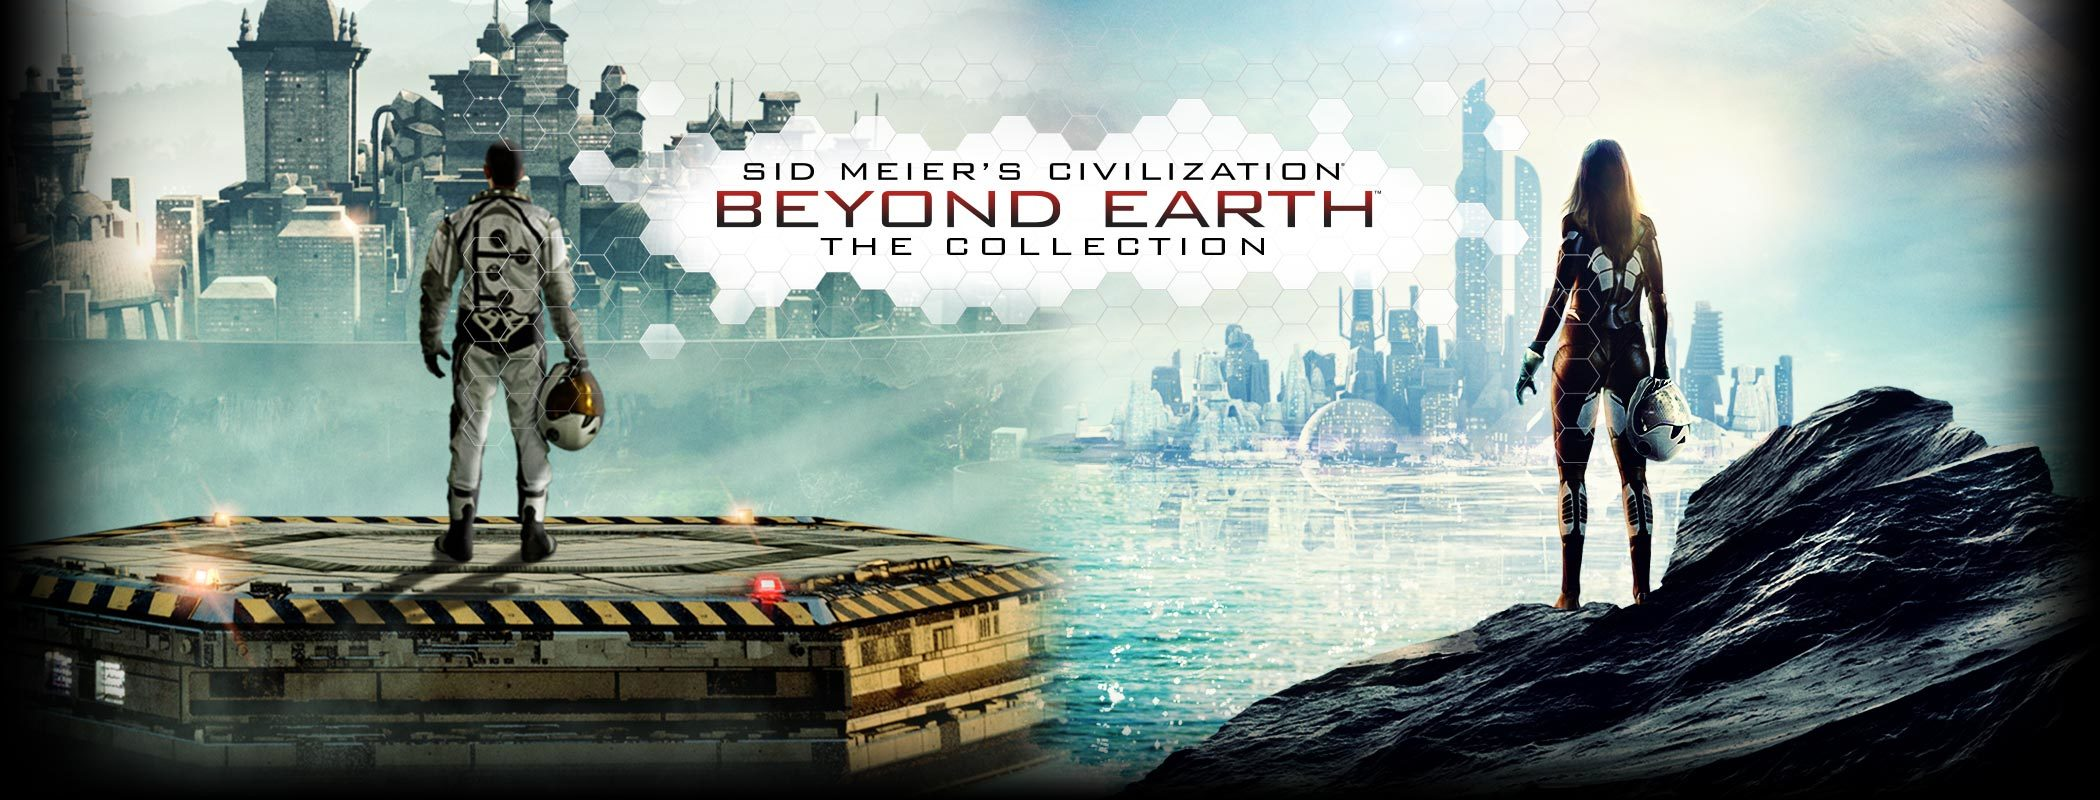 sid meiers civilization beyond earth rising tide sponsors